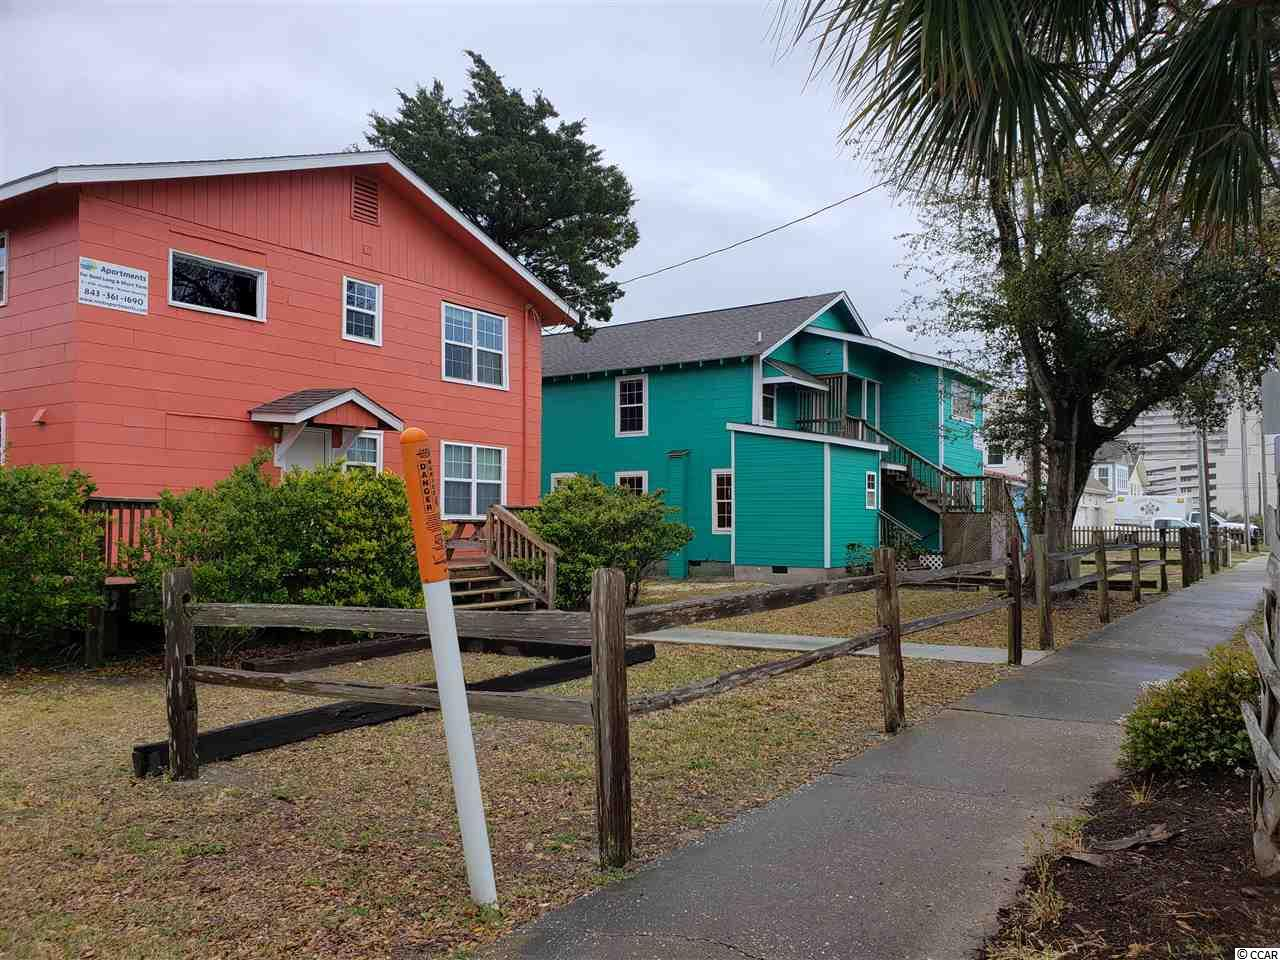 A four bedroom house built on a commercial corner lot east of 17 business a short walk to the beach, surrounded by beautiful properties, shopping and dining.  Located a short drive from Barefoot Landing.